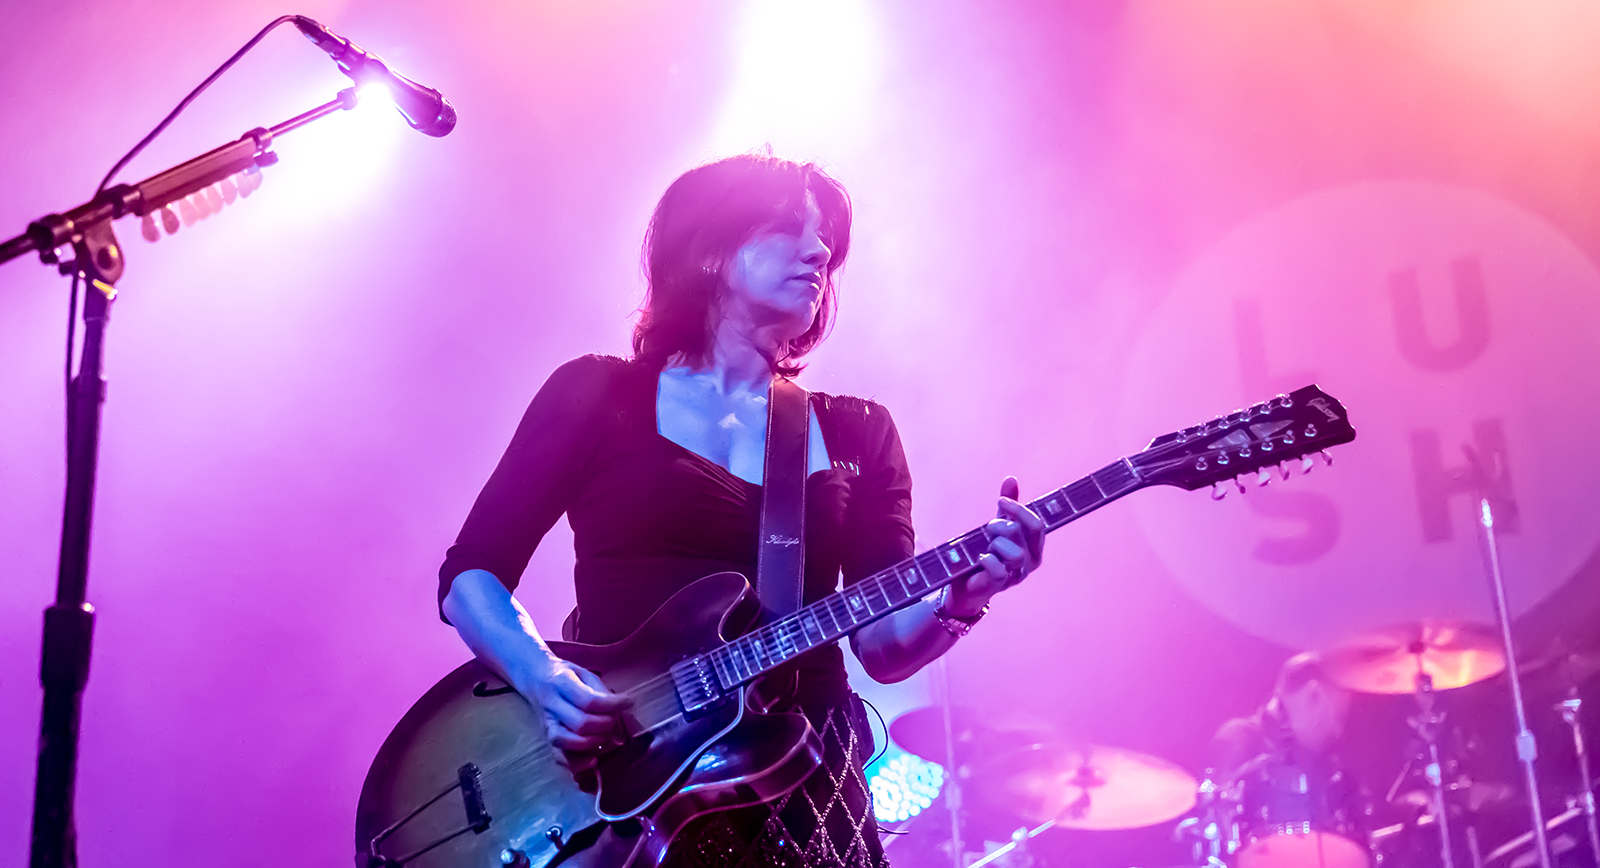 Lush-Tour-2016-Concert-Review-Photos-Photography-The-Warfield-San-Francisco-FI